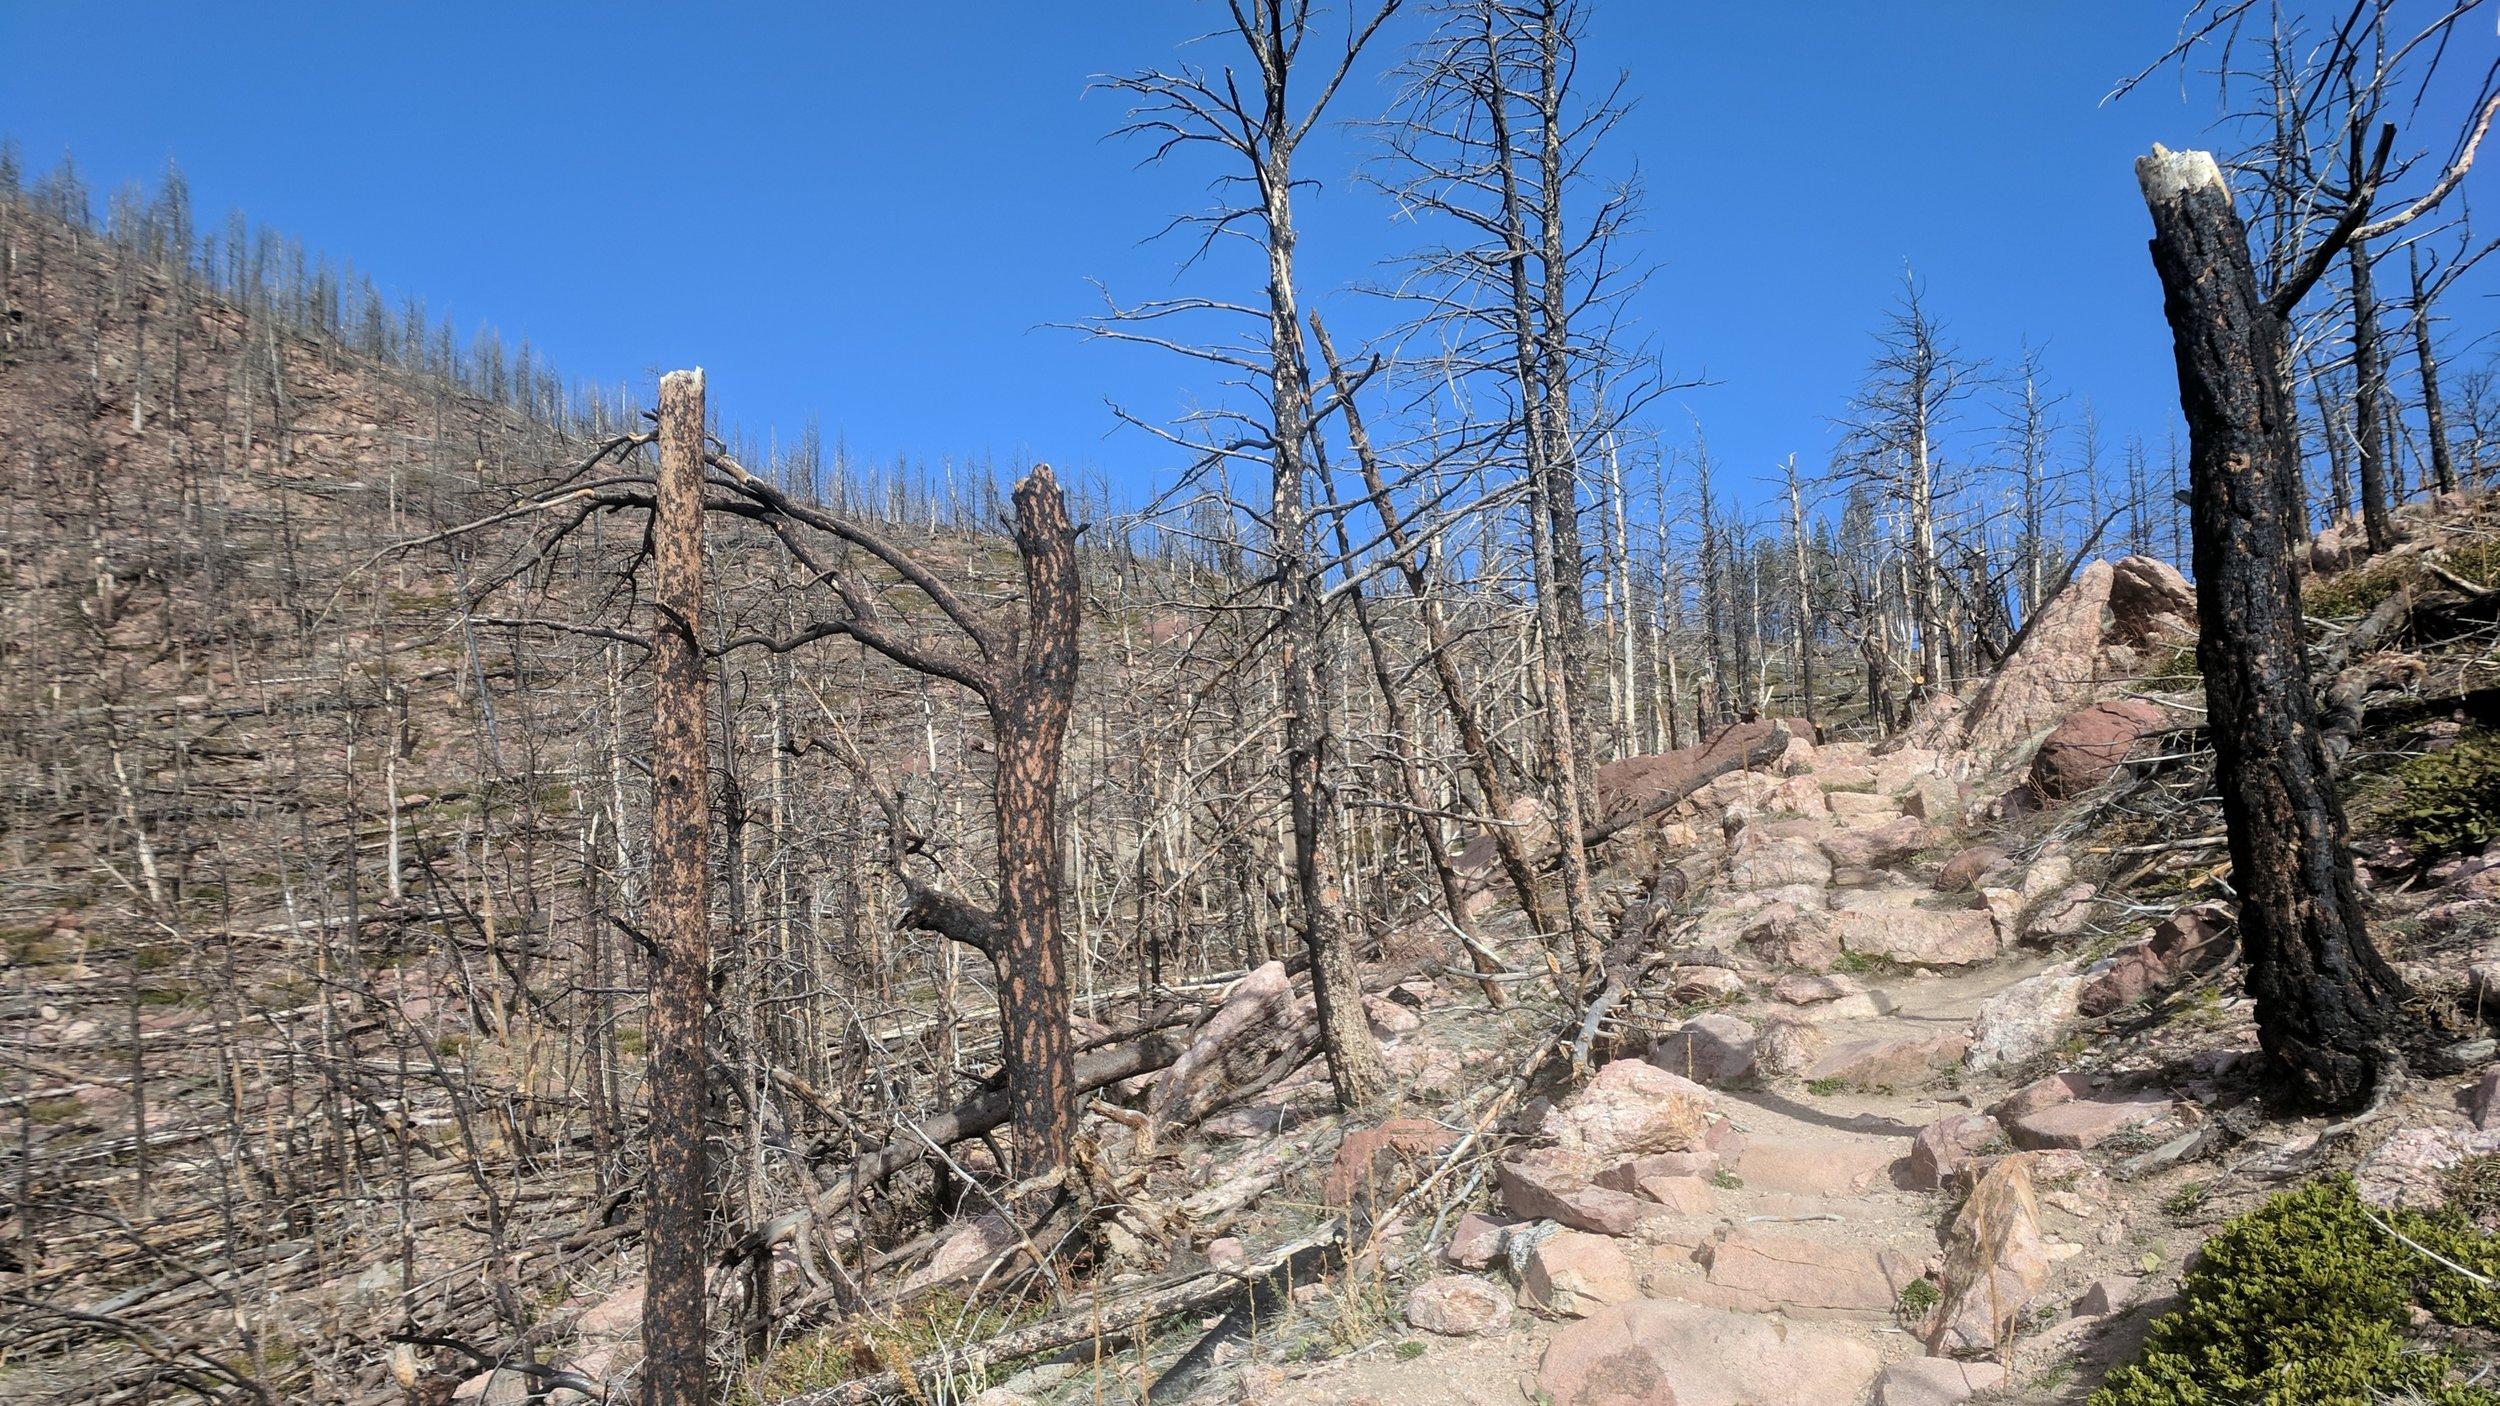 Most of the Shadow Canyon Trail is nicely forested, but the massive Flagstaff Fire in June 2012 left this area toward the top completely burned-out and open. Just beyond where I took this photo (at the trail junction at the saddle), turn left to head up South Boulder Peak.